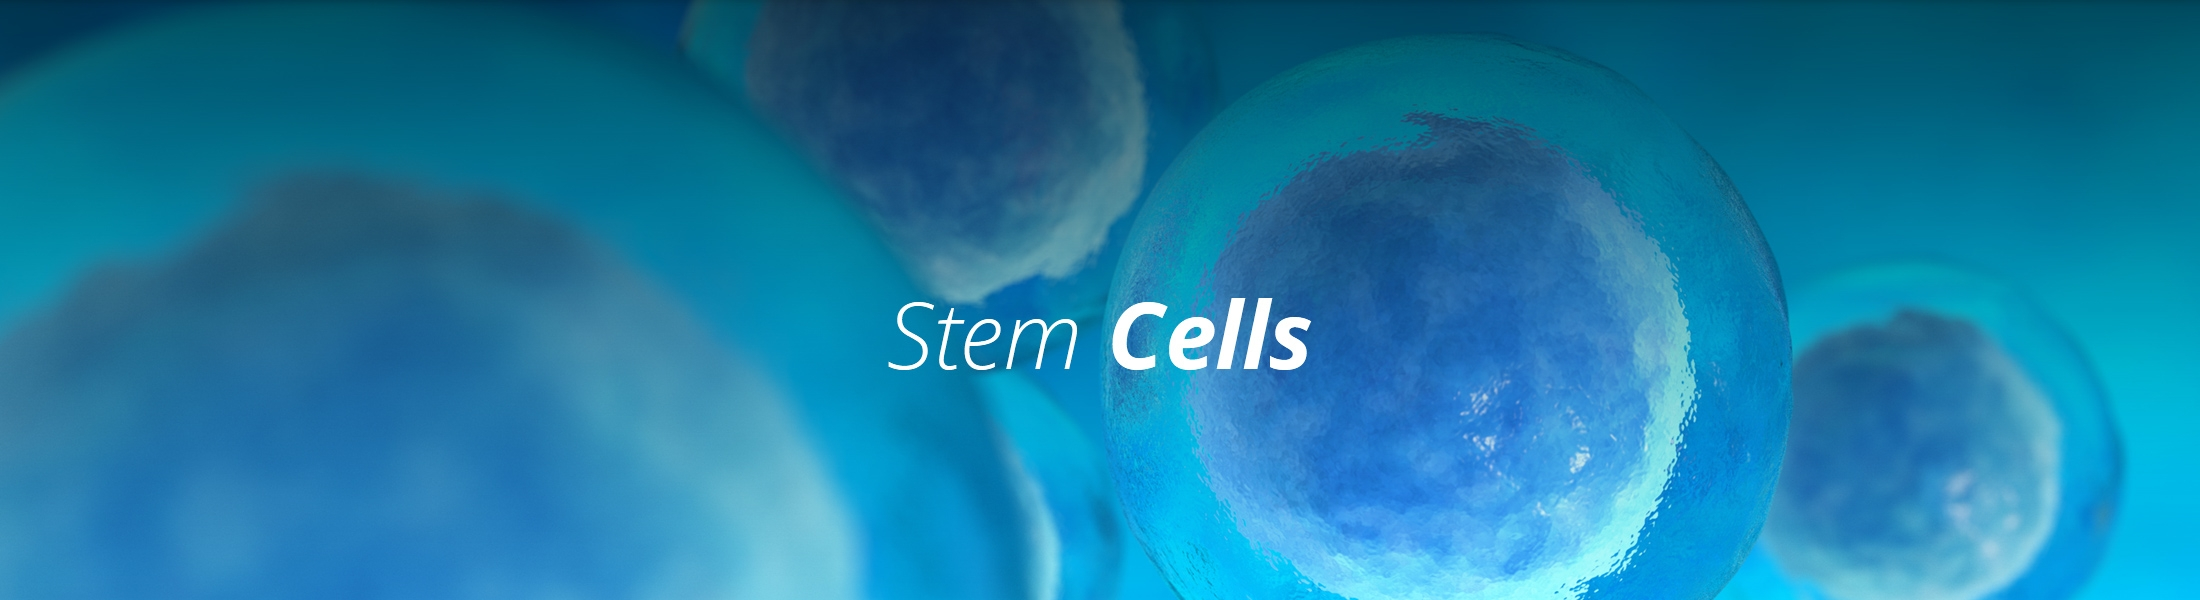 The Stem Cell Institute of Texas (@stemcellinstituteoftx) Cover Image